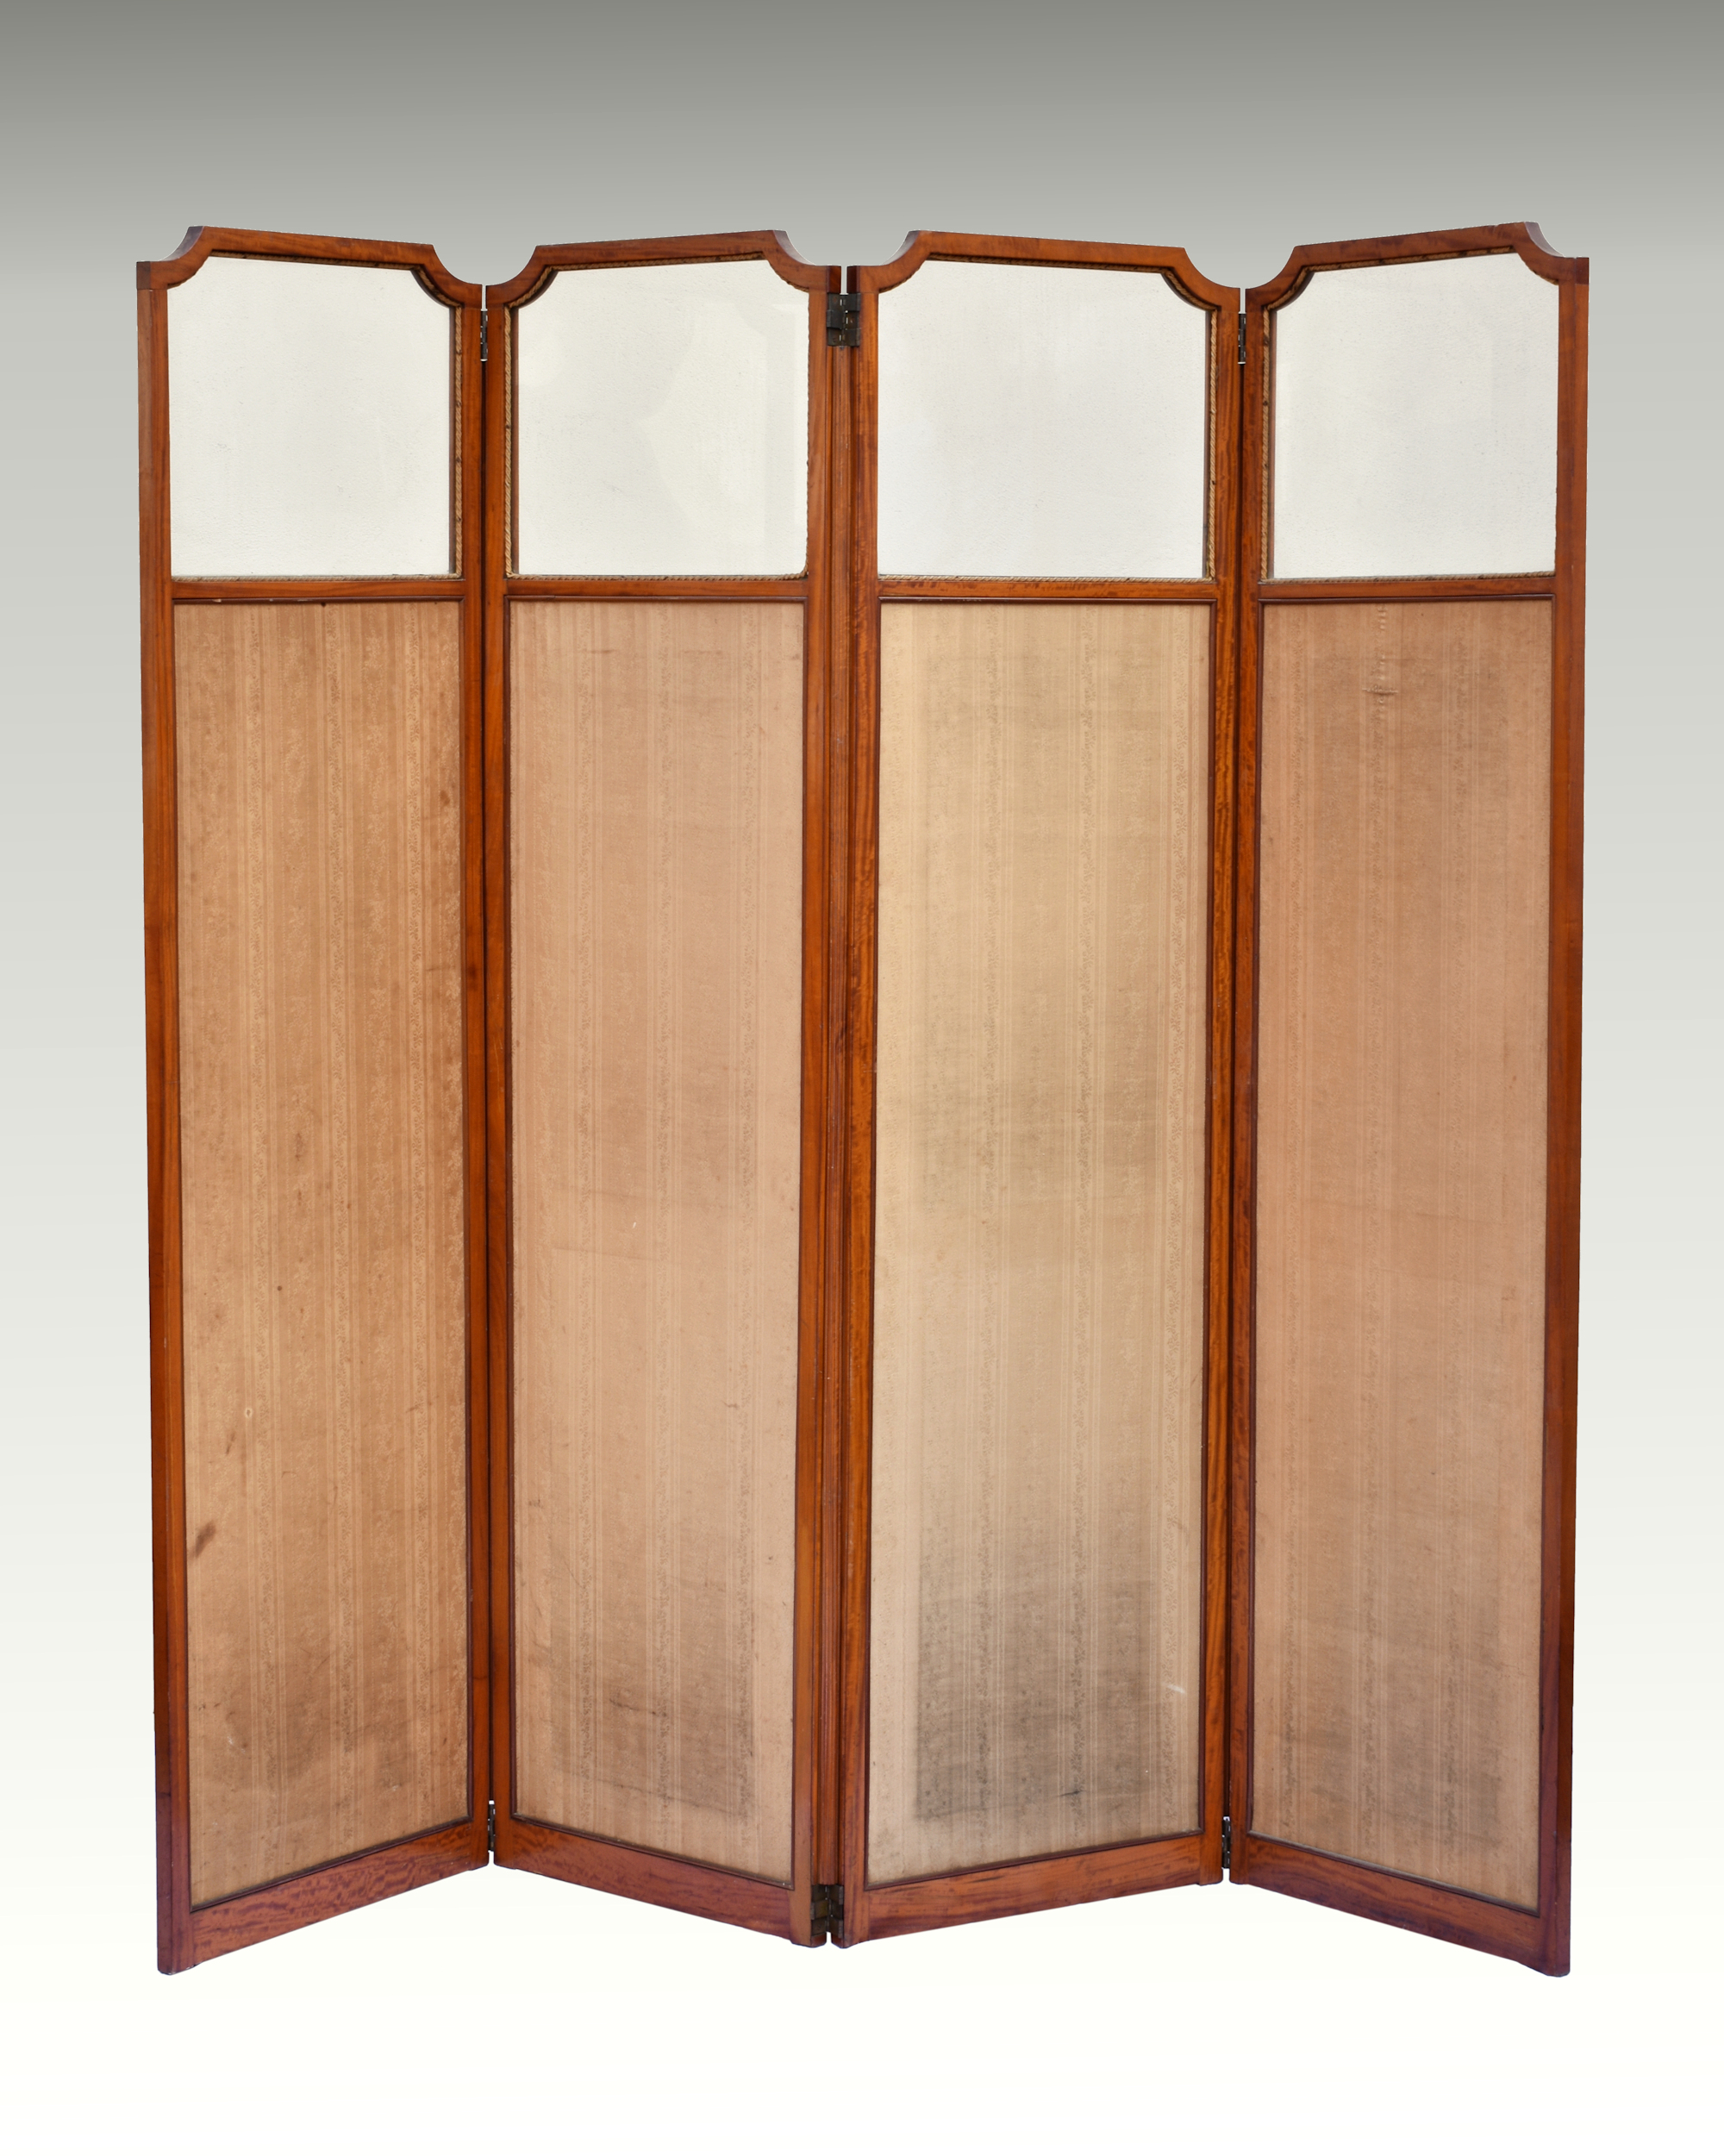 Lot 621 - A good quality 19th century solid satinwood four fold dressing screen the glazed top with incuse